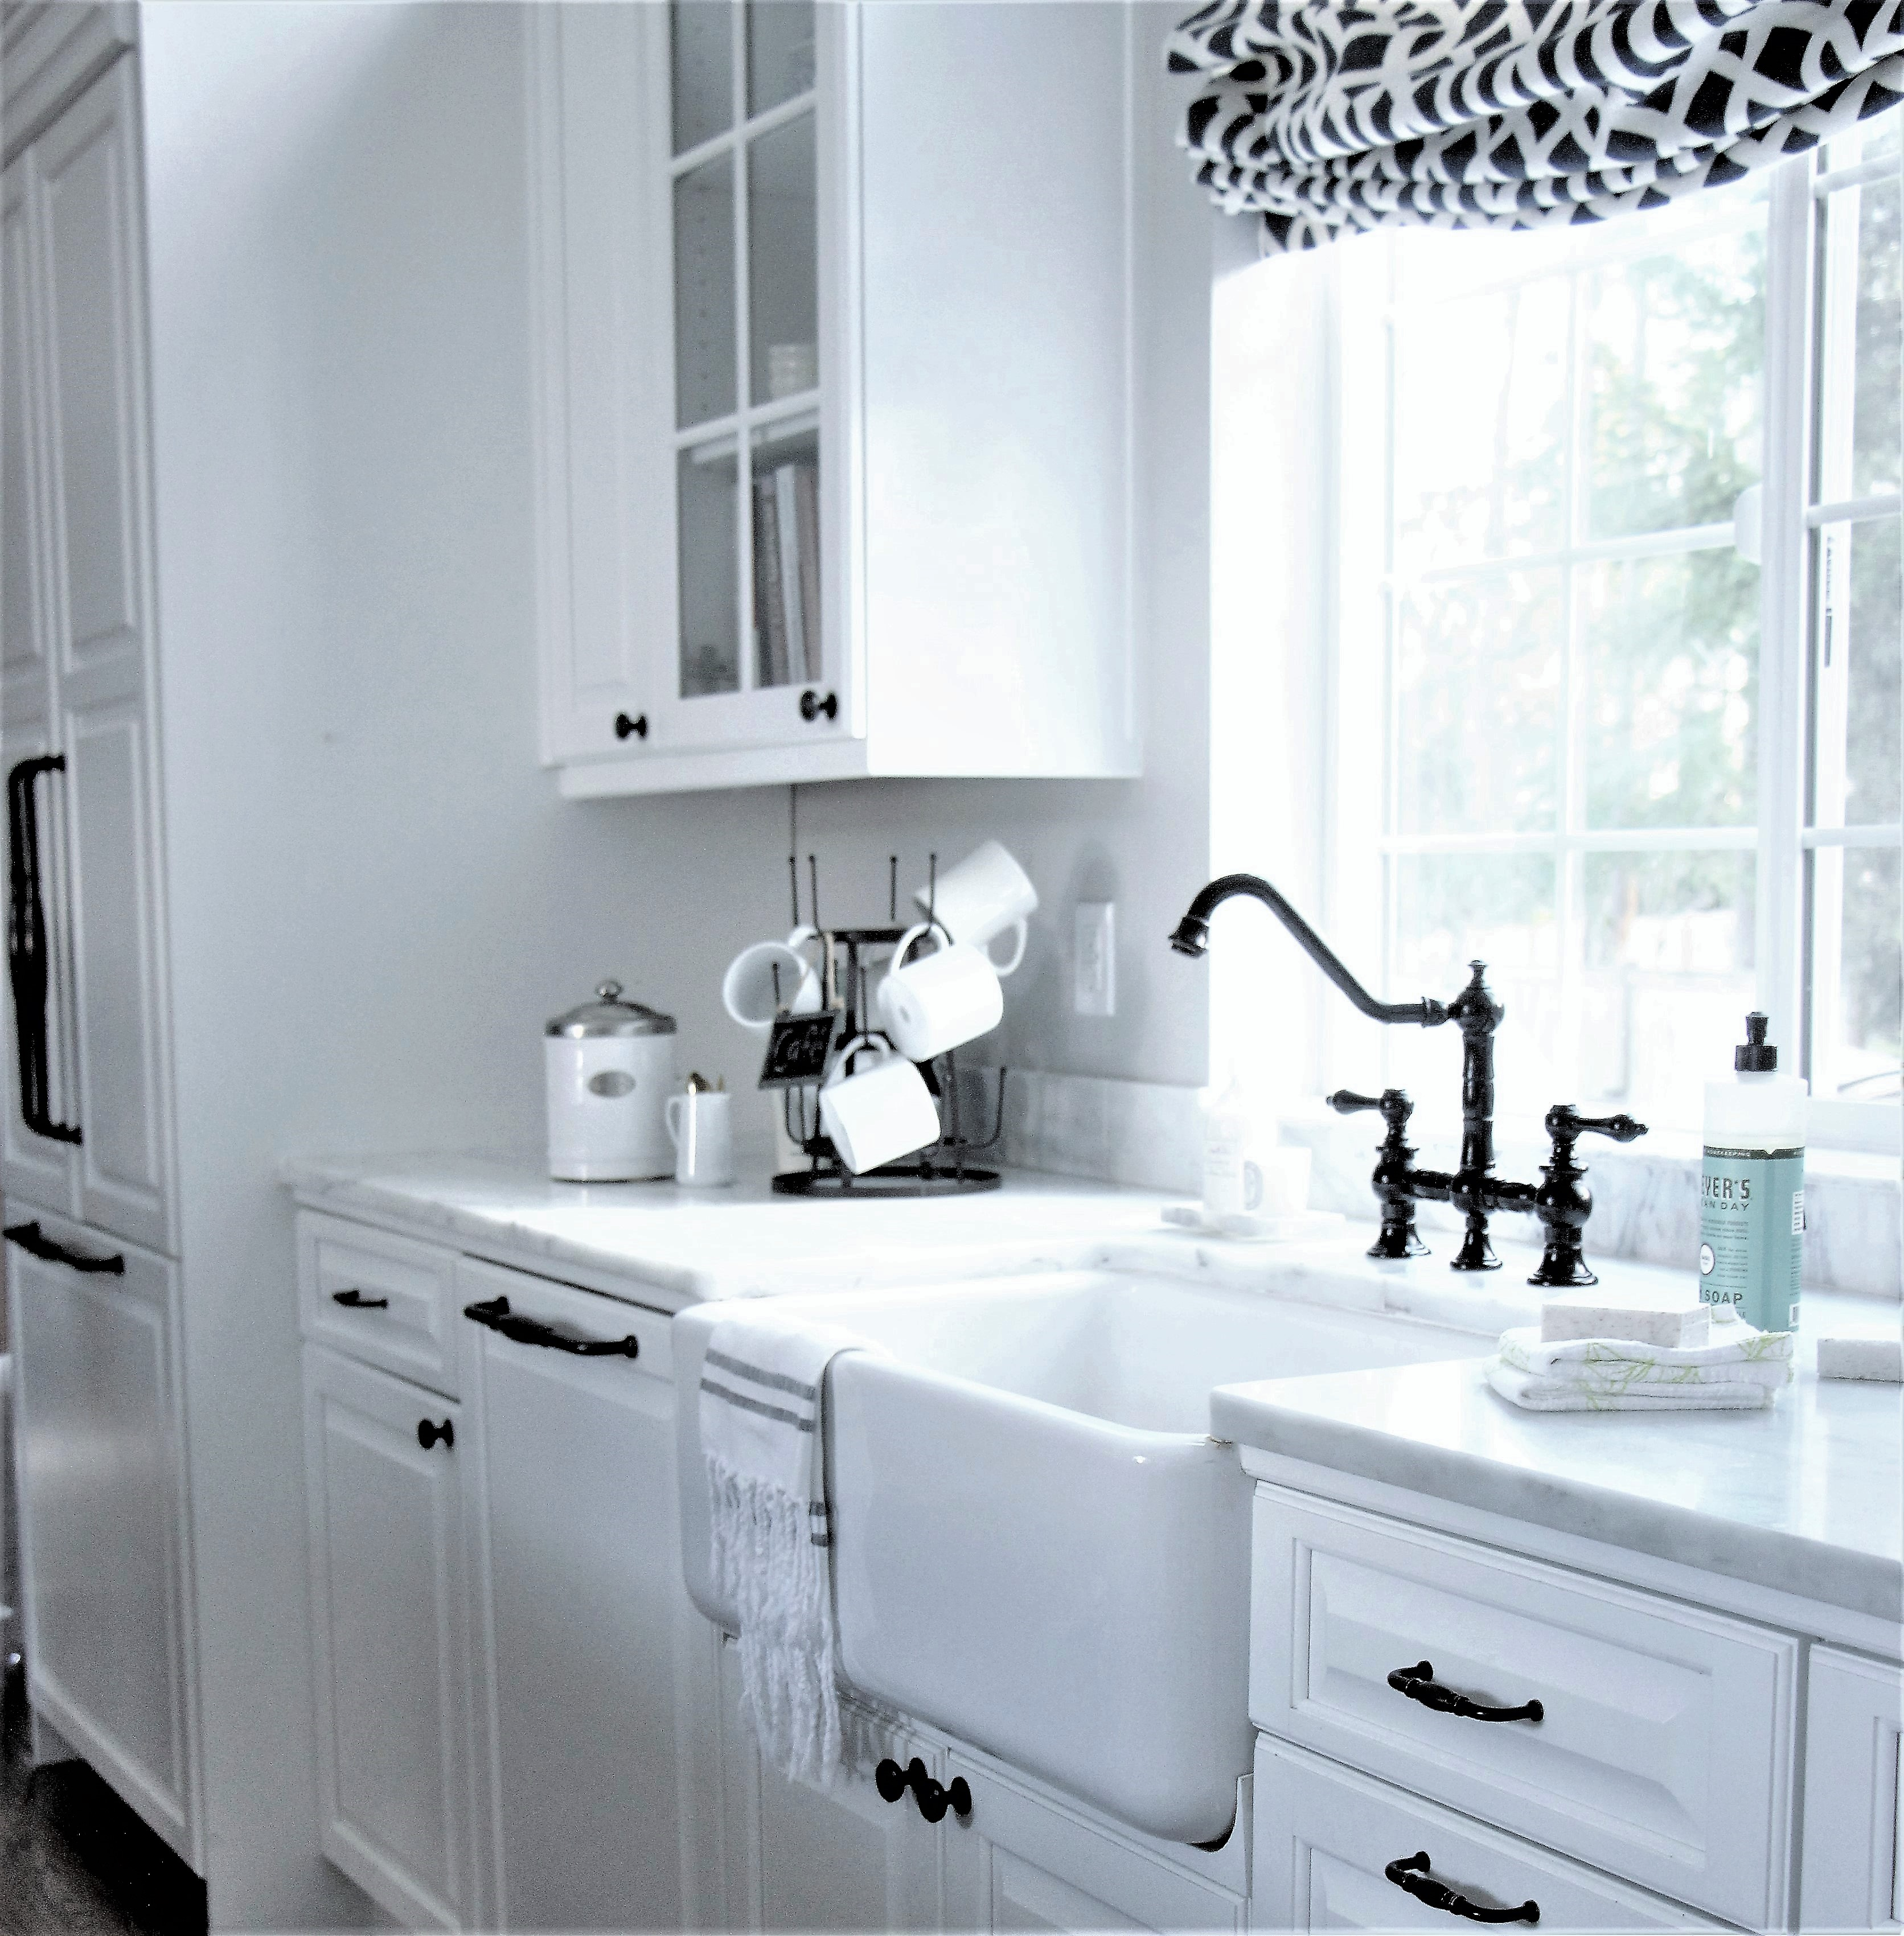 kitchen: sinks and accessories - Lemon Grove Lane